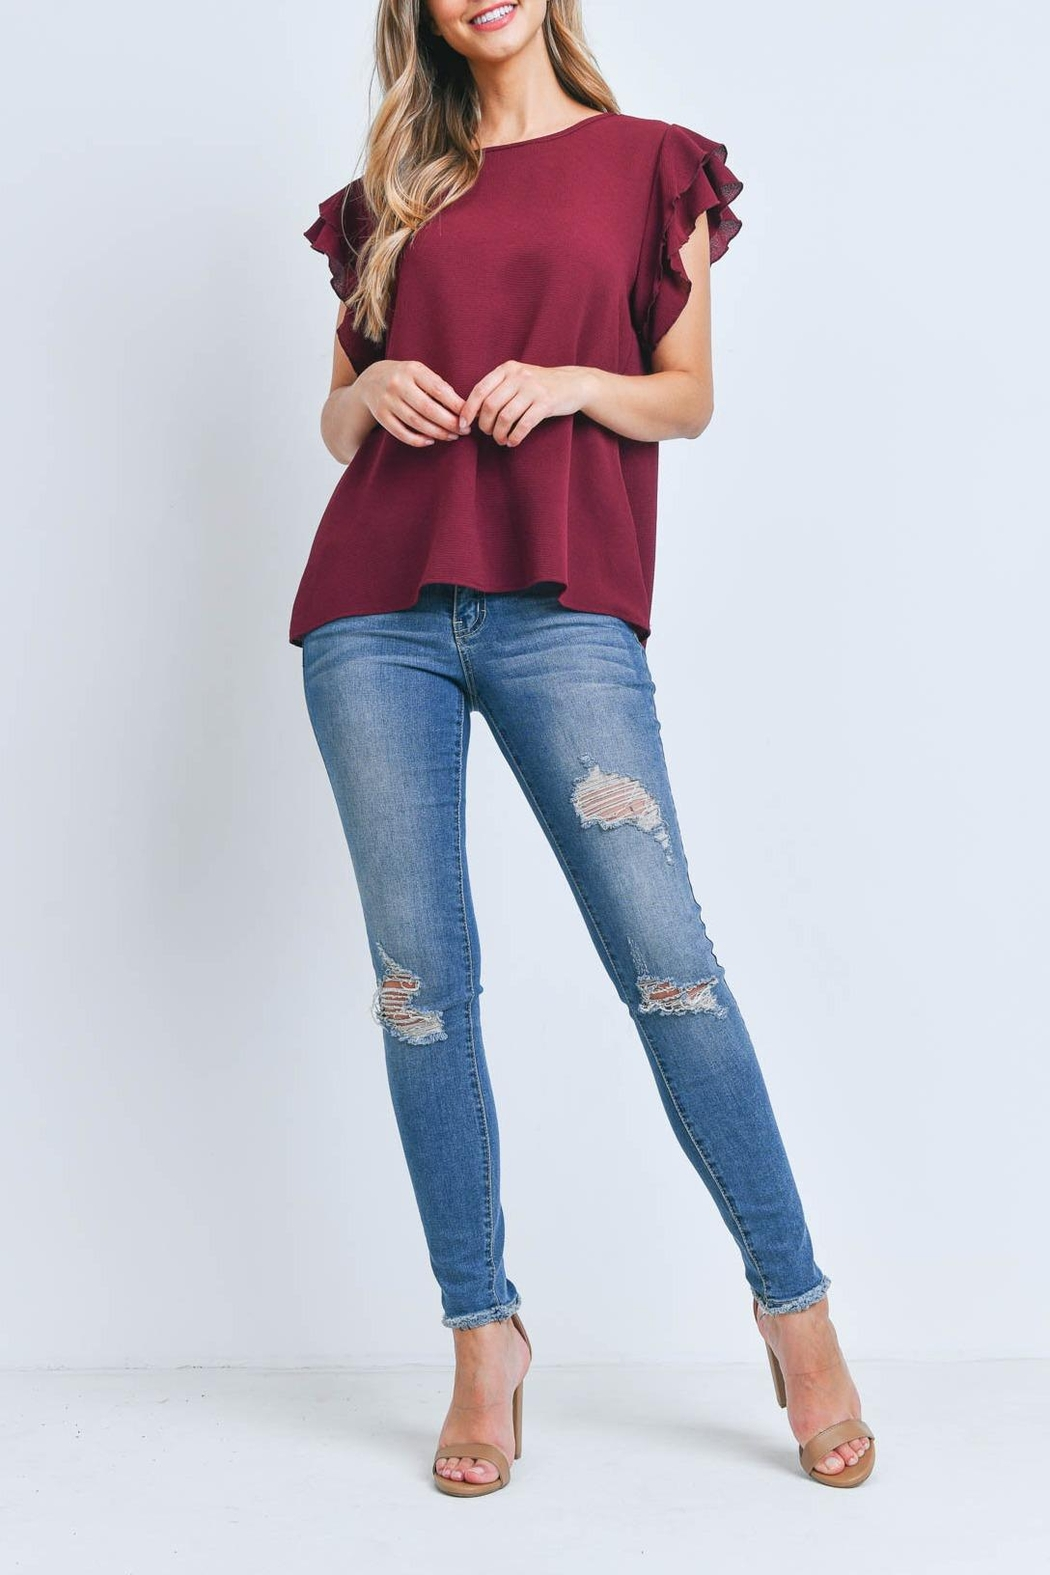 Riah Fashion Solid-Ruffle-Blouse - Front Full Image